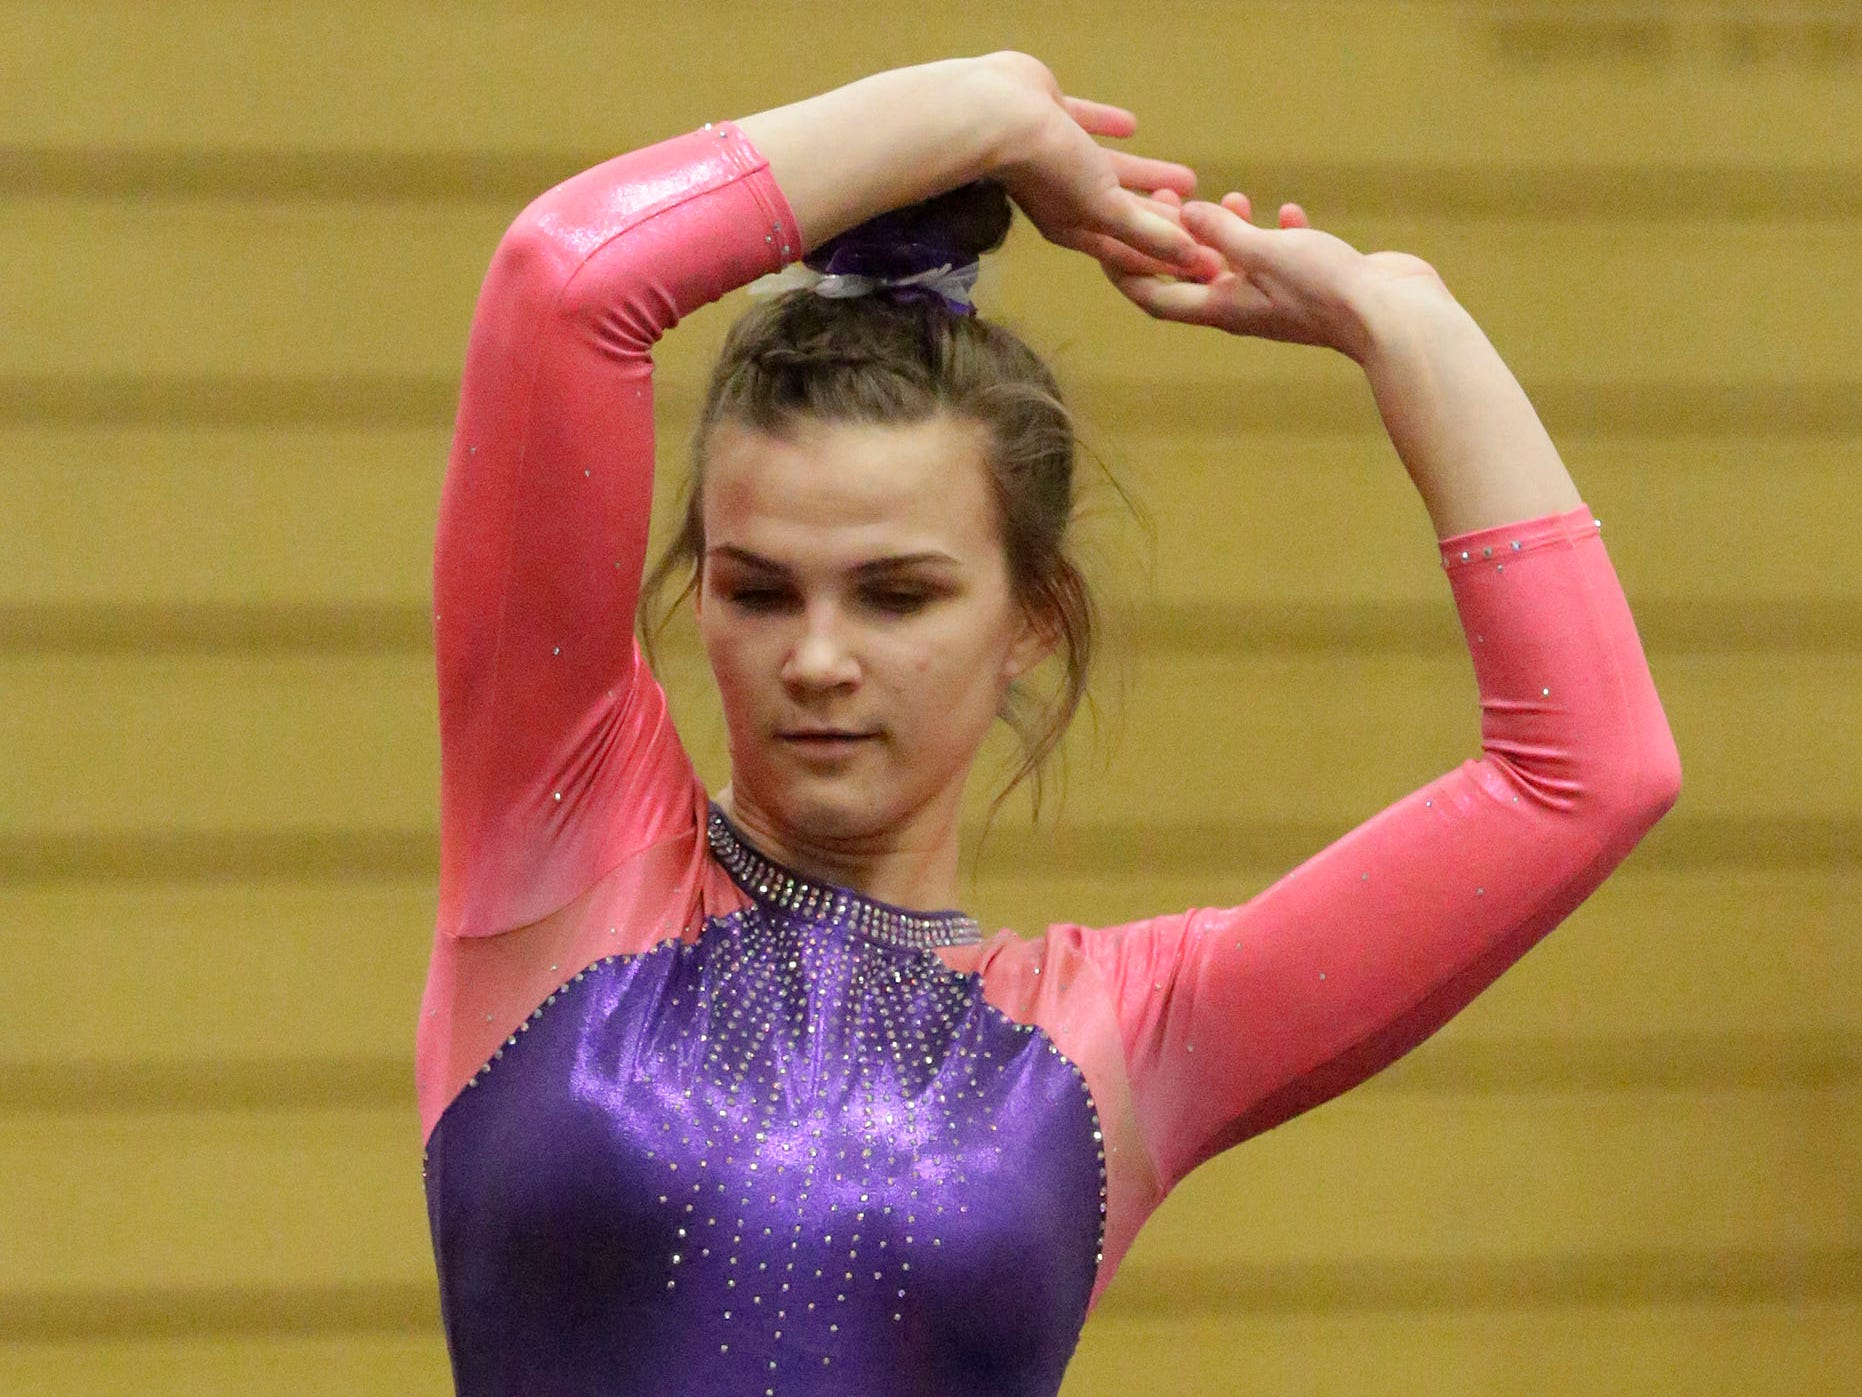 Oshkosh's Megan Best moves during her floor exercise at the WIAA Eastern Valley Conference Gymnastics Meet at Sheboygan South, Friday, February 15, 2019, in Sheboygan, Wis.